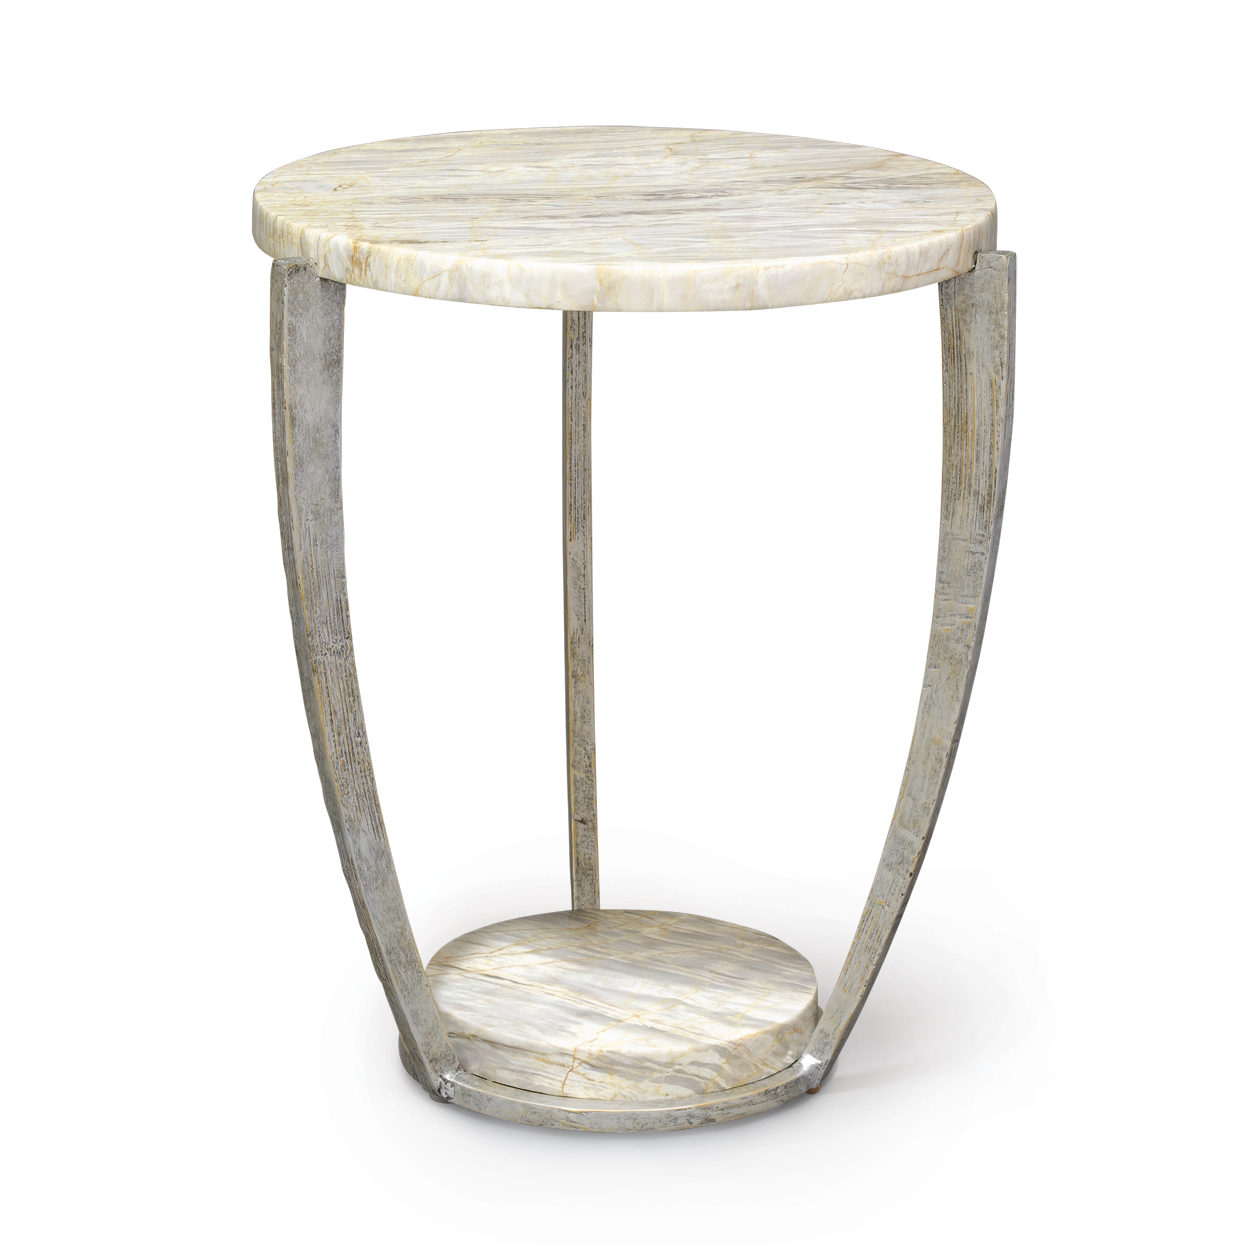 exciting marble accent table set bistro threshold top wood round small antique and faux killian target metal black white nero full size home decoration design battery run lamps